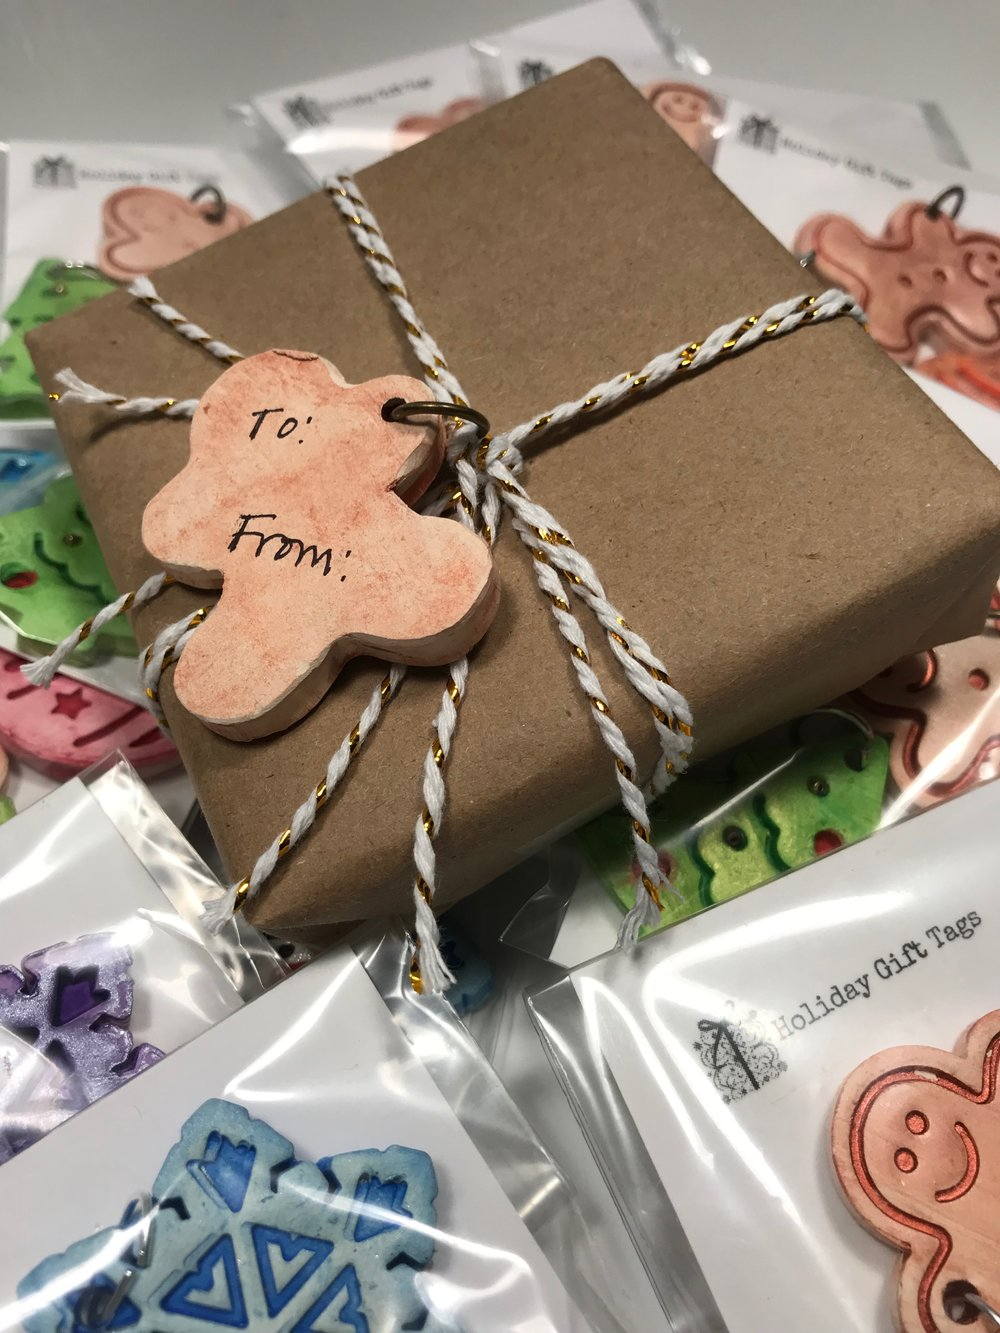 Want to add a little personalization to a package you're wrapping this holiday season? You can add your own special message to the back of each of these unique gift tags. A pack of five containing a gingerbread man, snowman, snowflake, tree, and ornament is $15. Click on the photo to order your set!